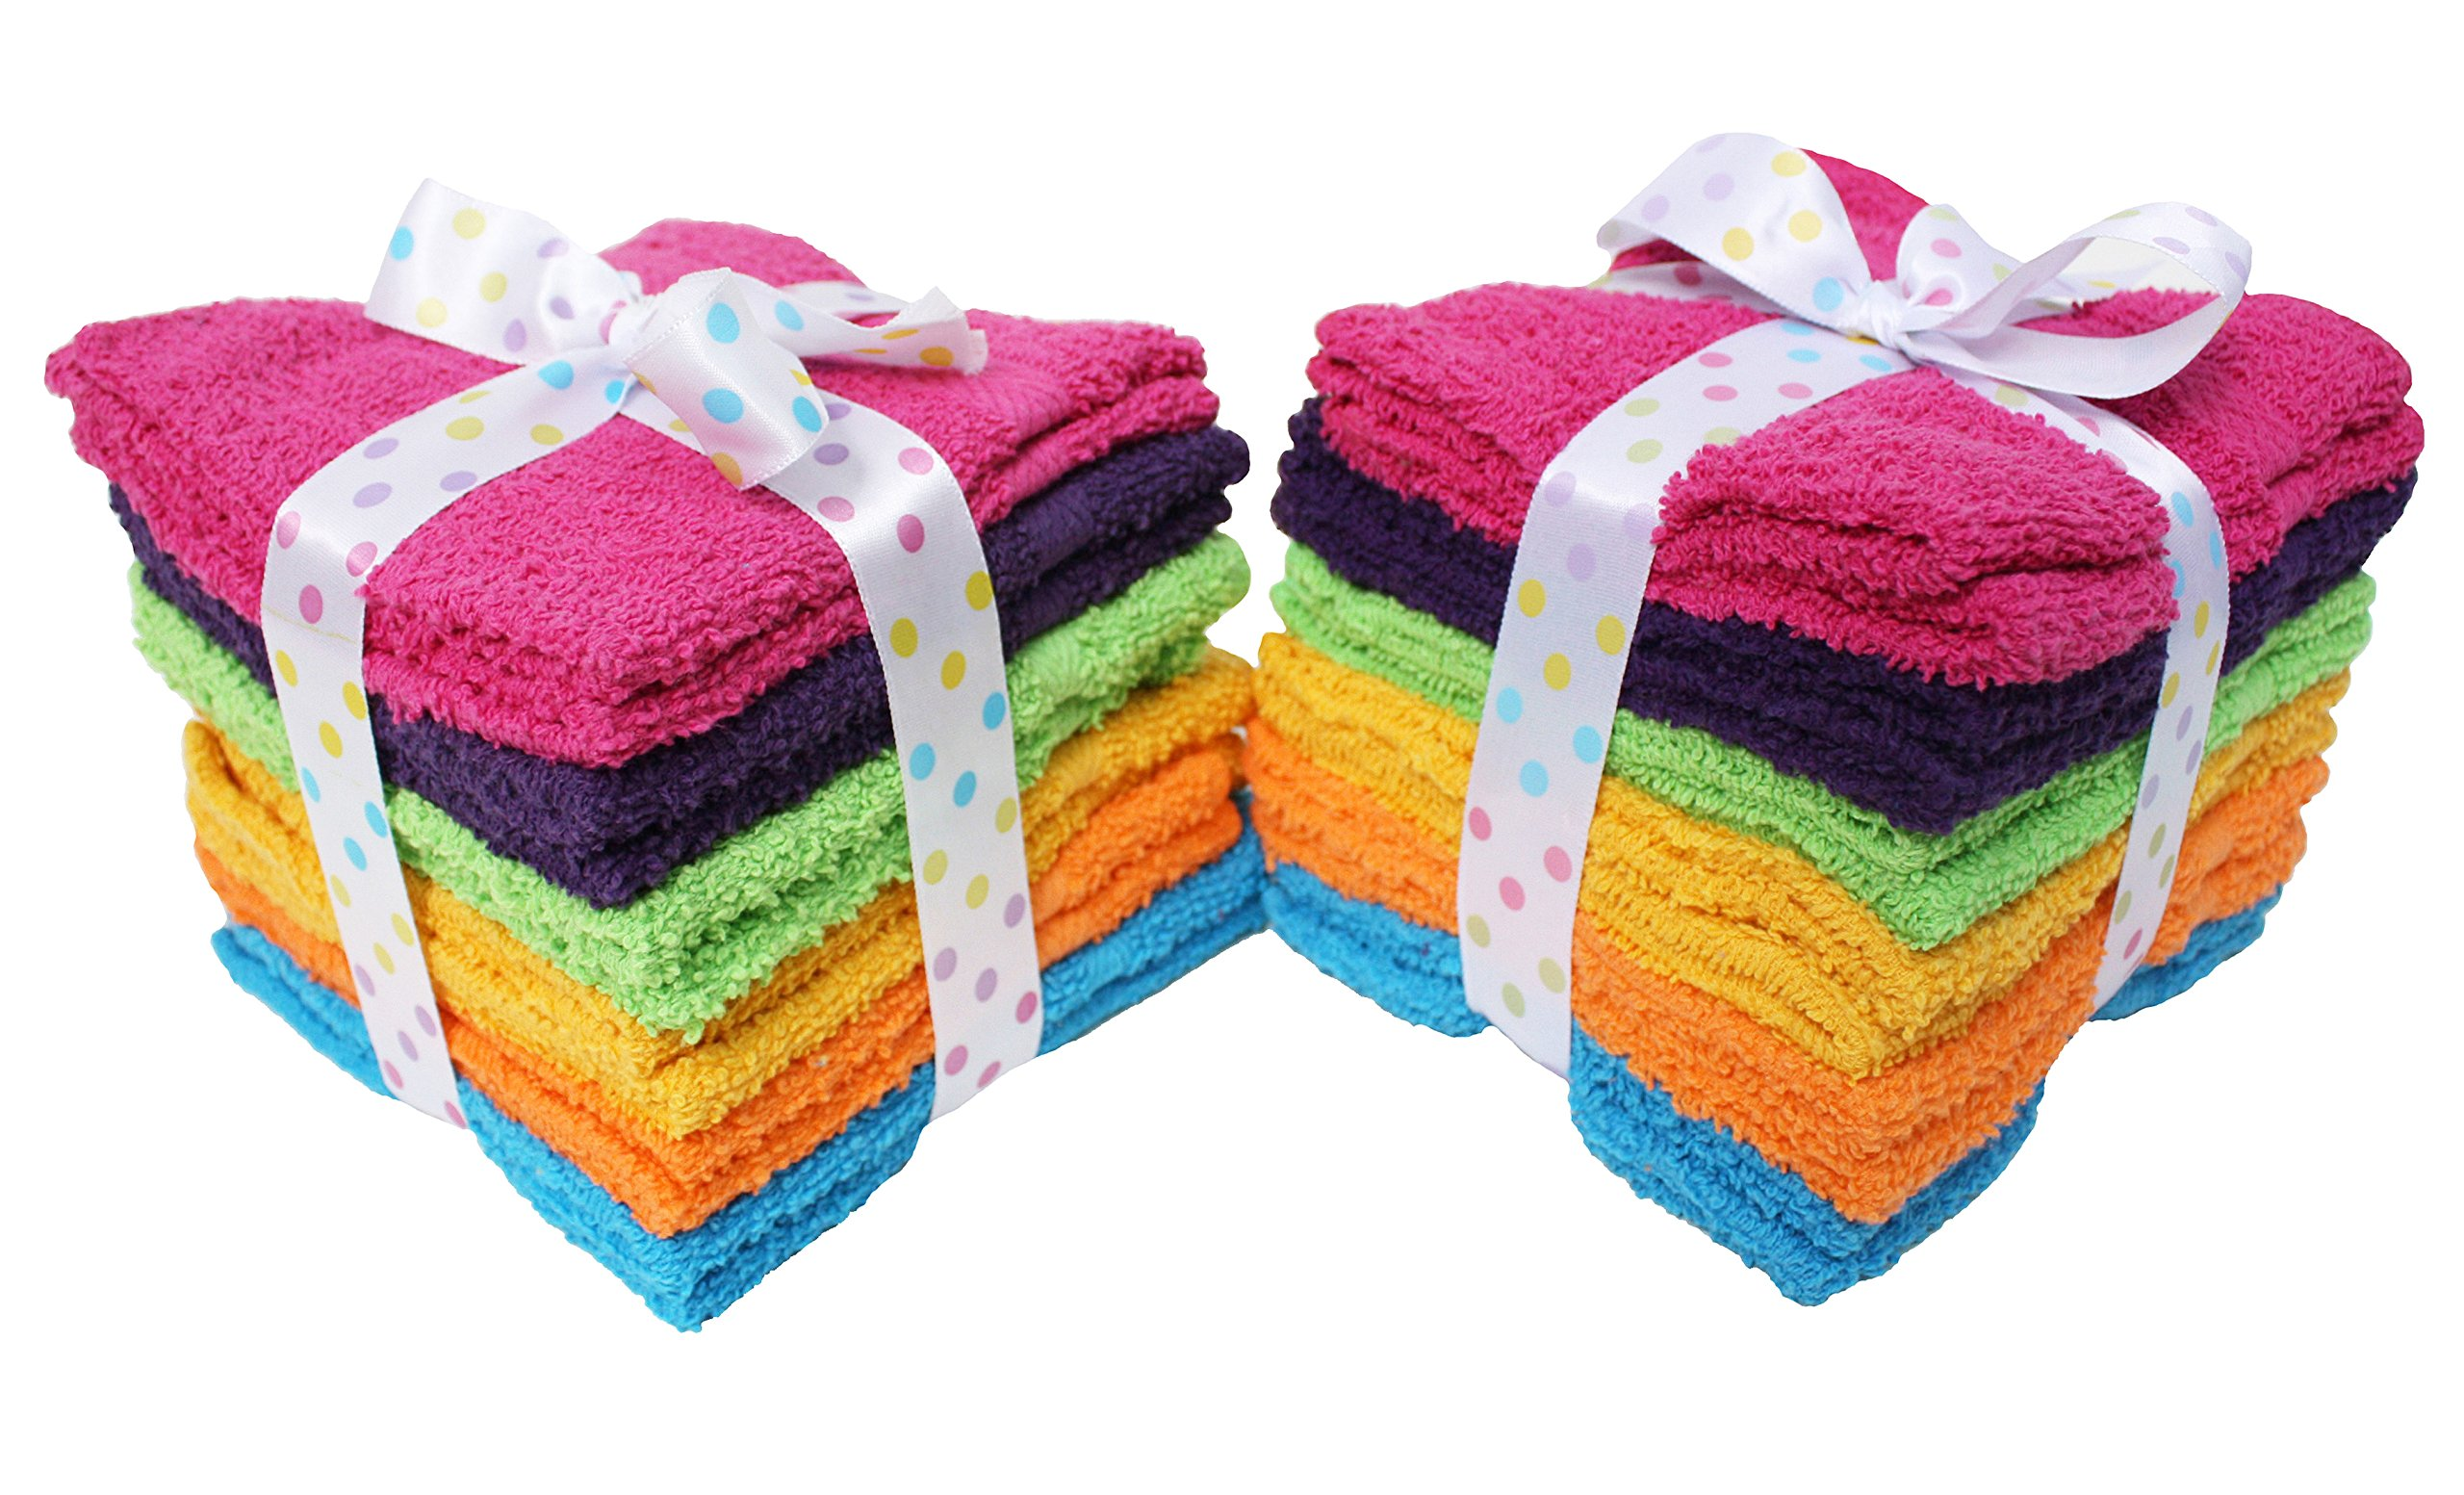 J&M Home Fashions Premium 24-Piece Bulk Pack Cotton Washcloth Set, 12x12, Hotel & Spa Quality, Super Soft and Ultra Absorbent Face Towels for Bathroom & Washroom-Bright Rainbow